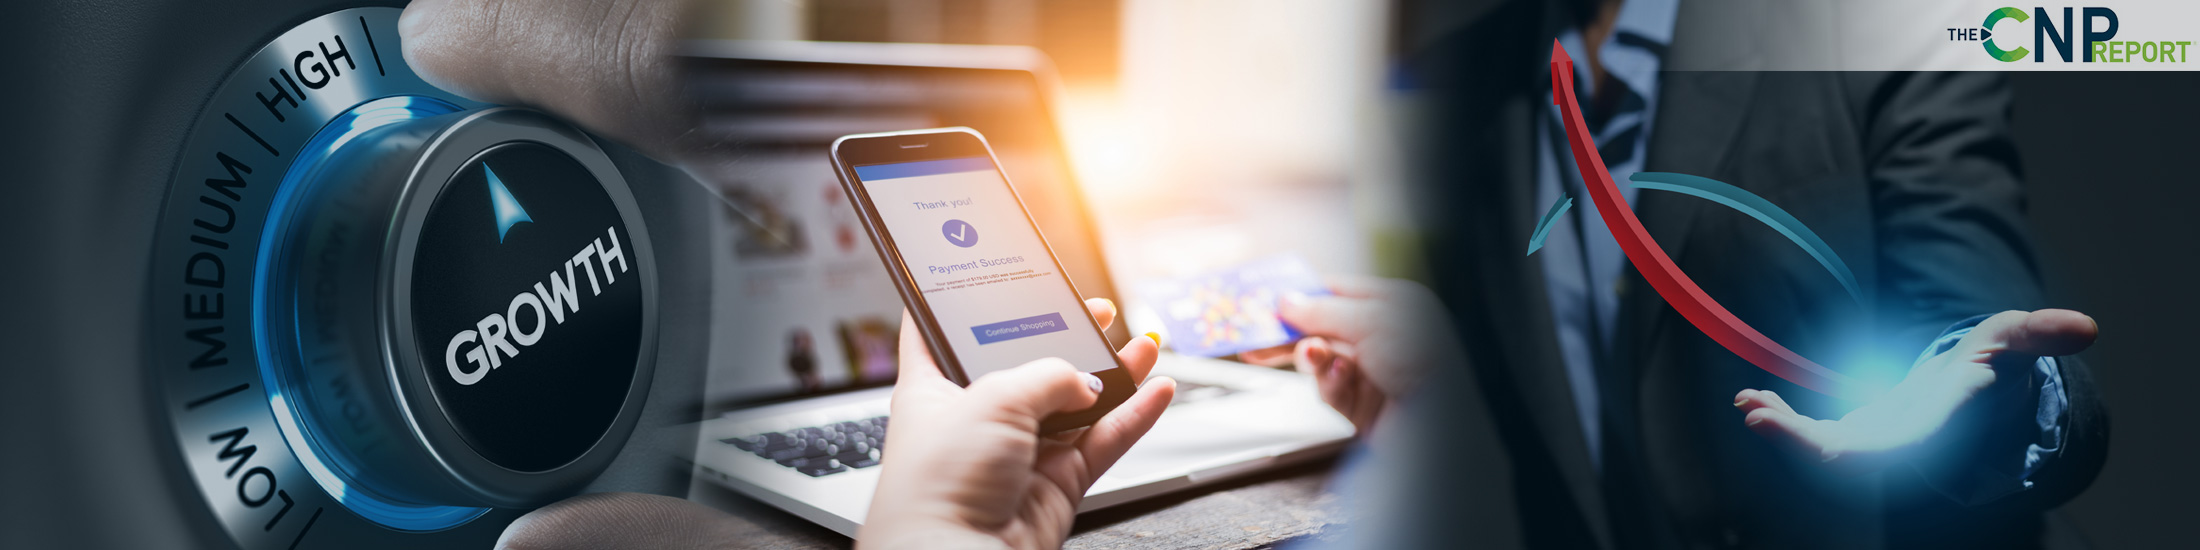 Remote Payment Transactions to Exceed $6 Trillion by 2024